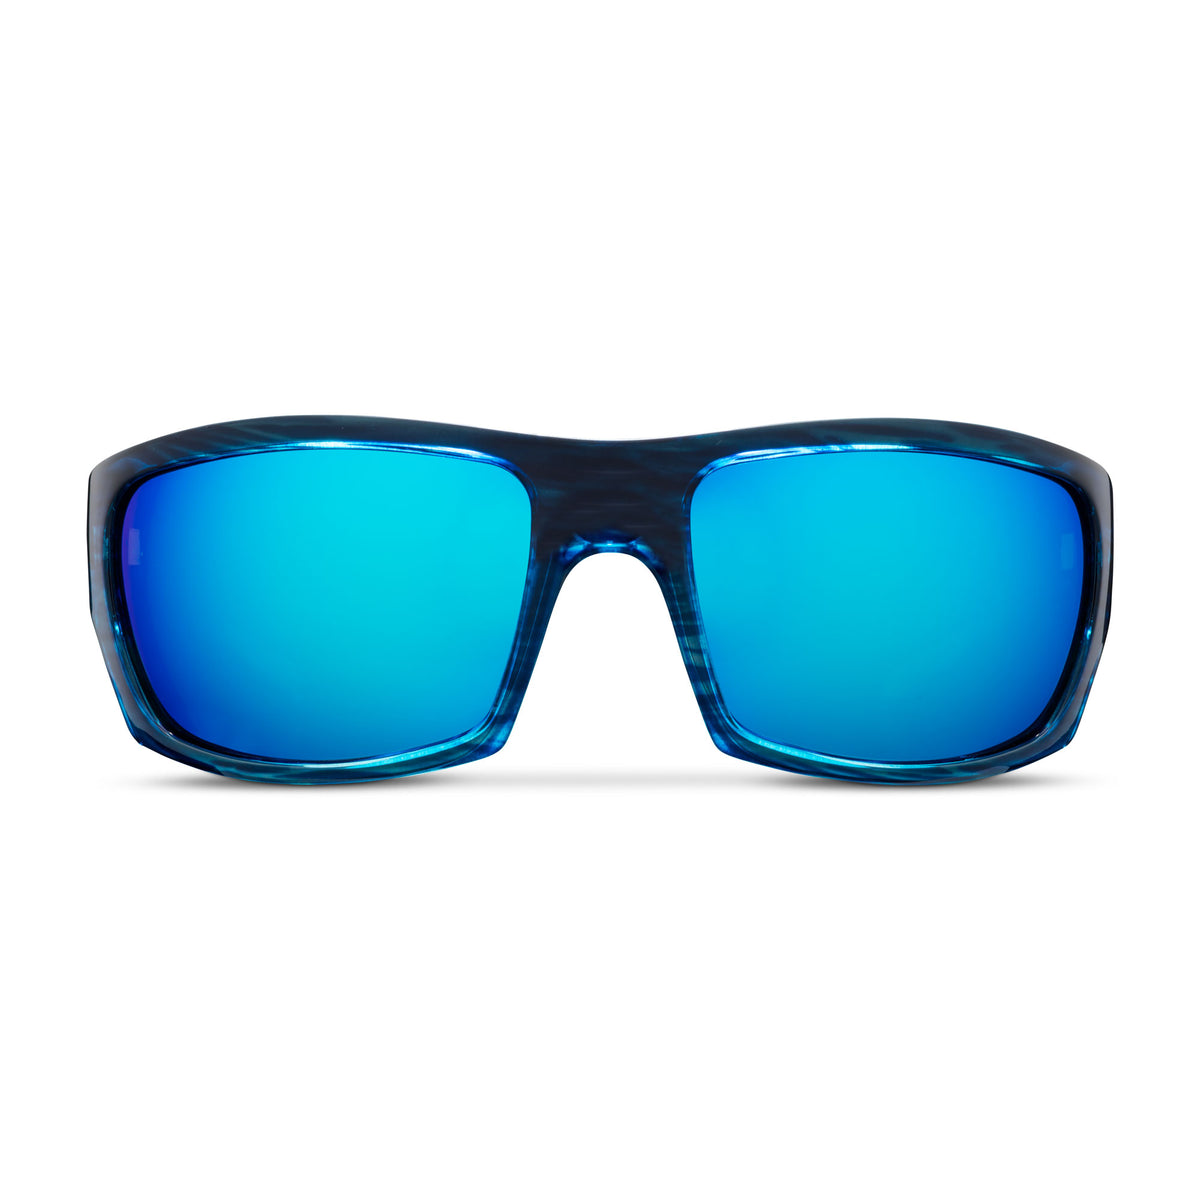 The Mack - Polarized Polycarbonate Lens Big Image - 2